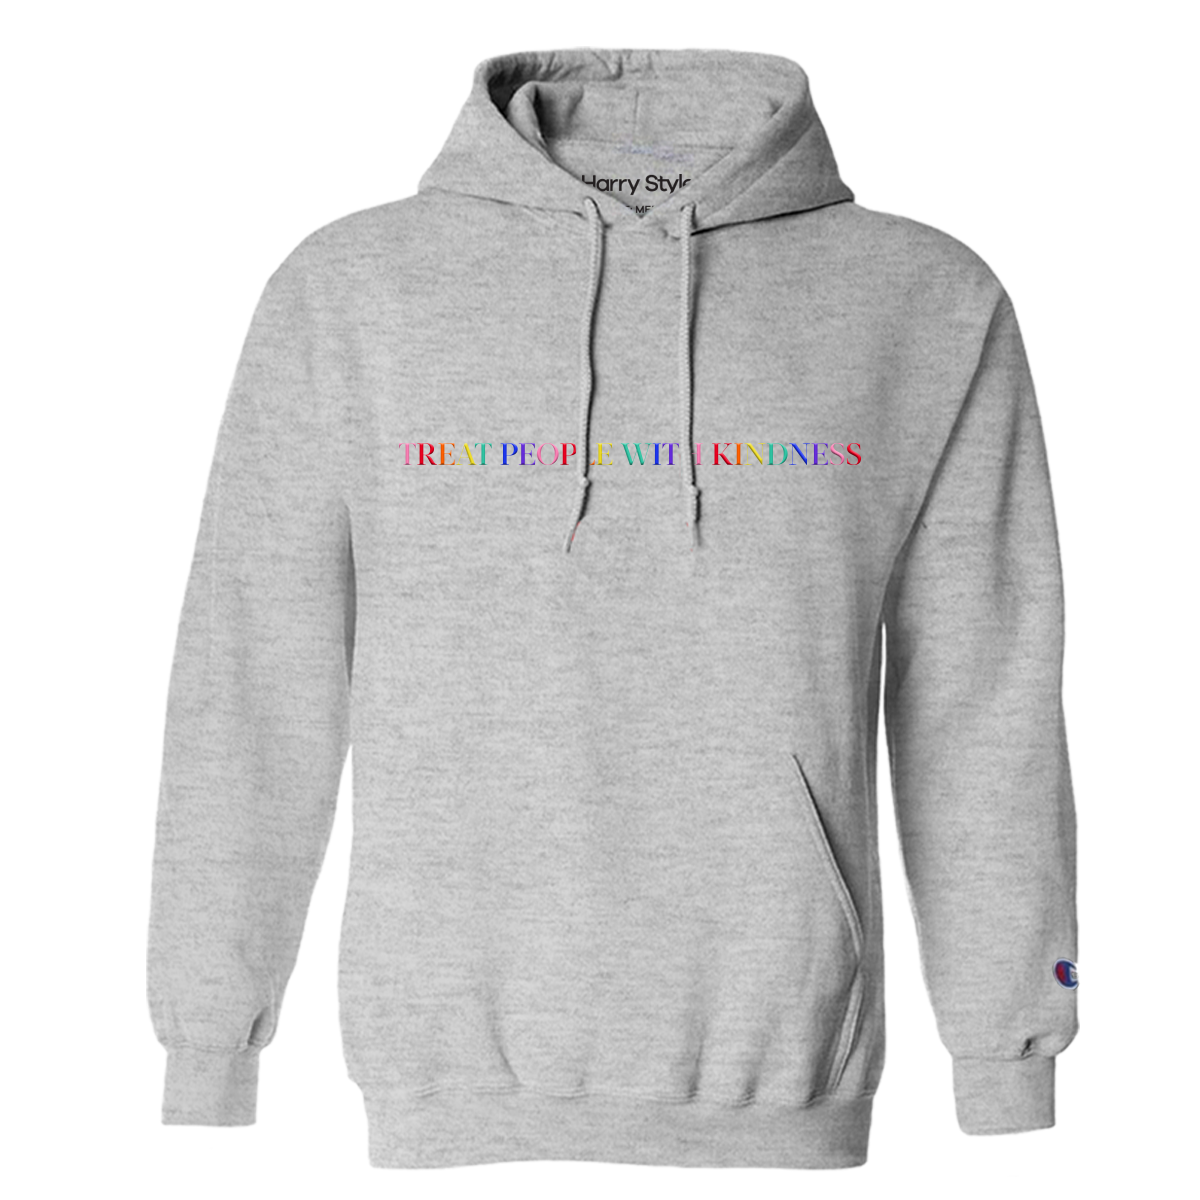 Treat People With Kindness Hoodie (Grey) - Harry Styles EU